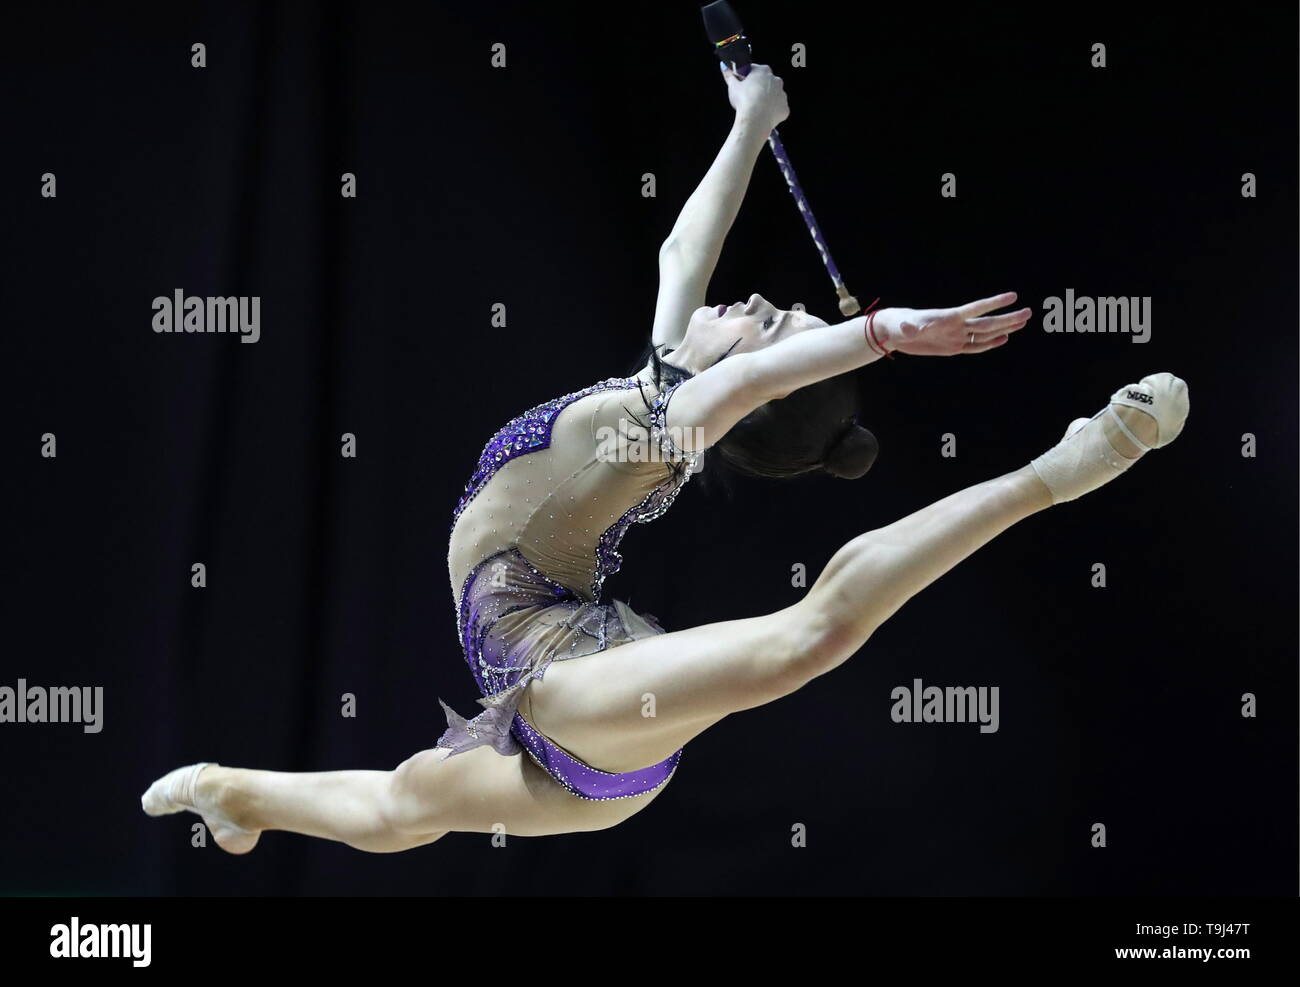 Baku, Azerbaijan. 19th May, 2019. BAKU, AZERBAIJAN - MAY 19, 2019: Israel's Nicol Zelikman performs her clubs routine during the individuals finals at the 2019 European Championships in Rhythmic Gymnastics. Sergei Savostyanov/TASS Credit: ITAR-TASS News Agency/Alamy Live News - Stock Image